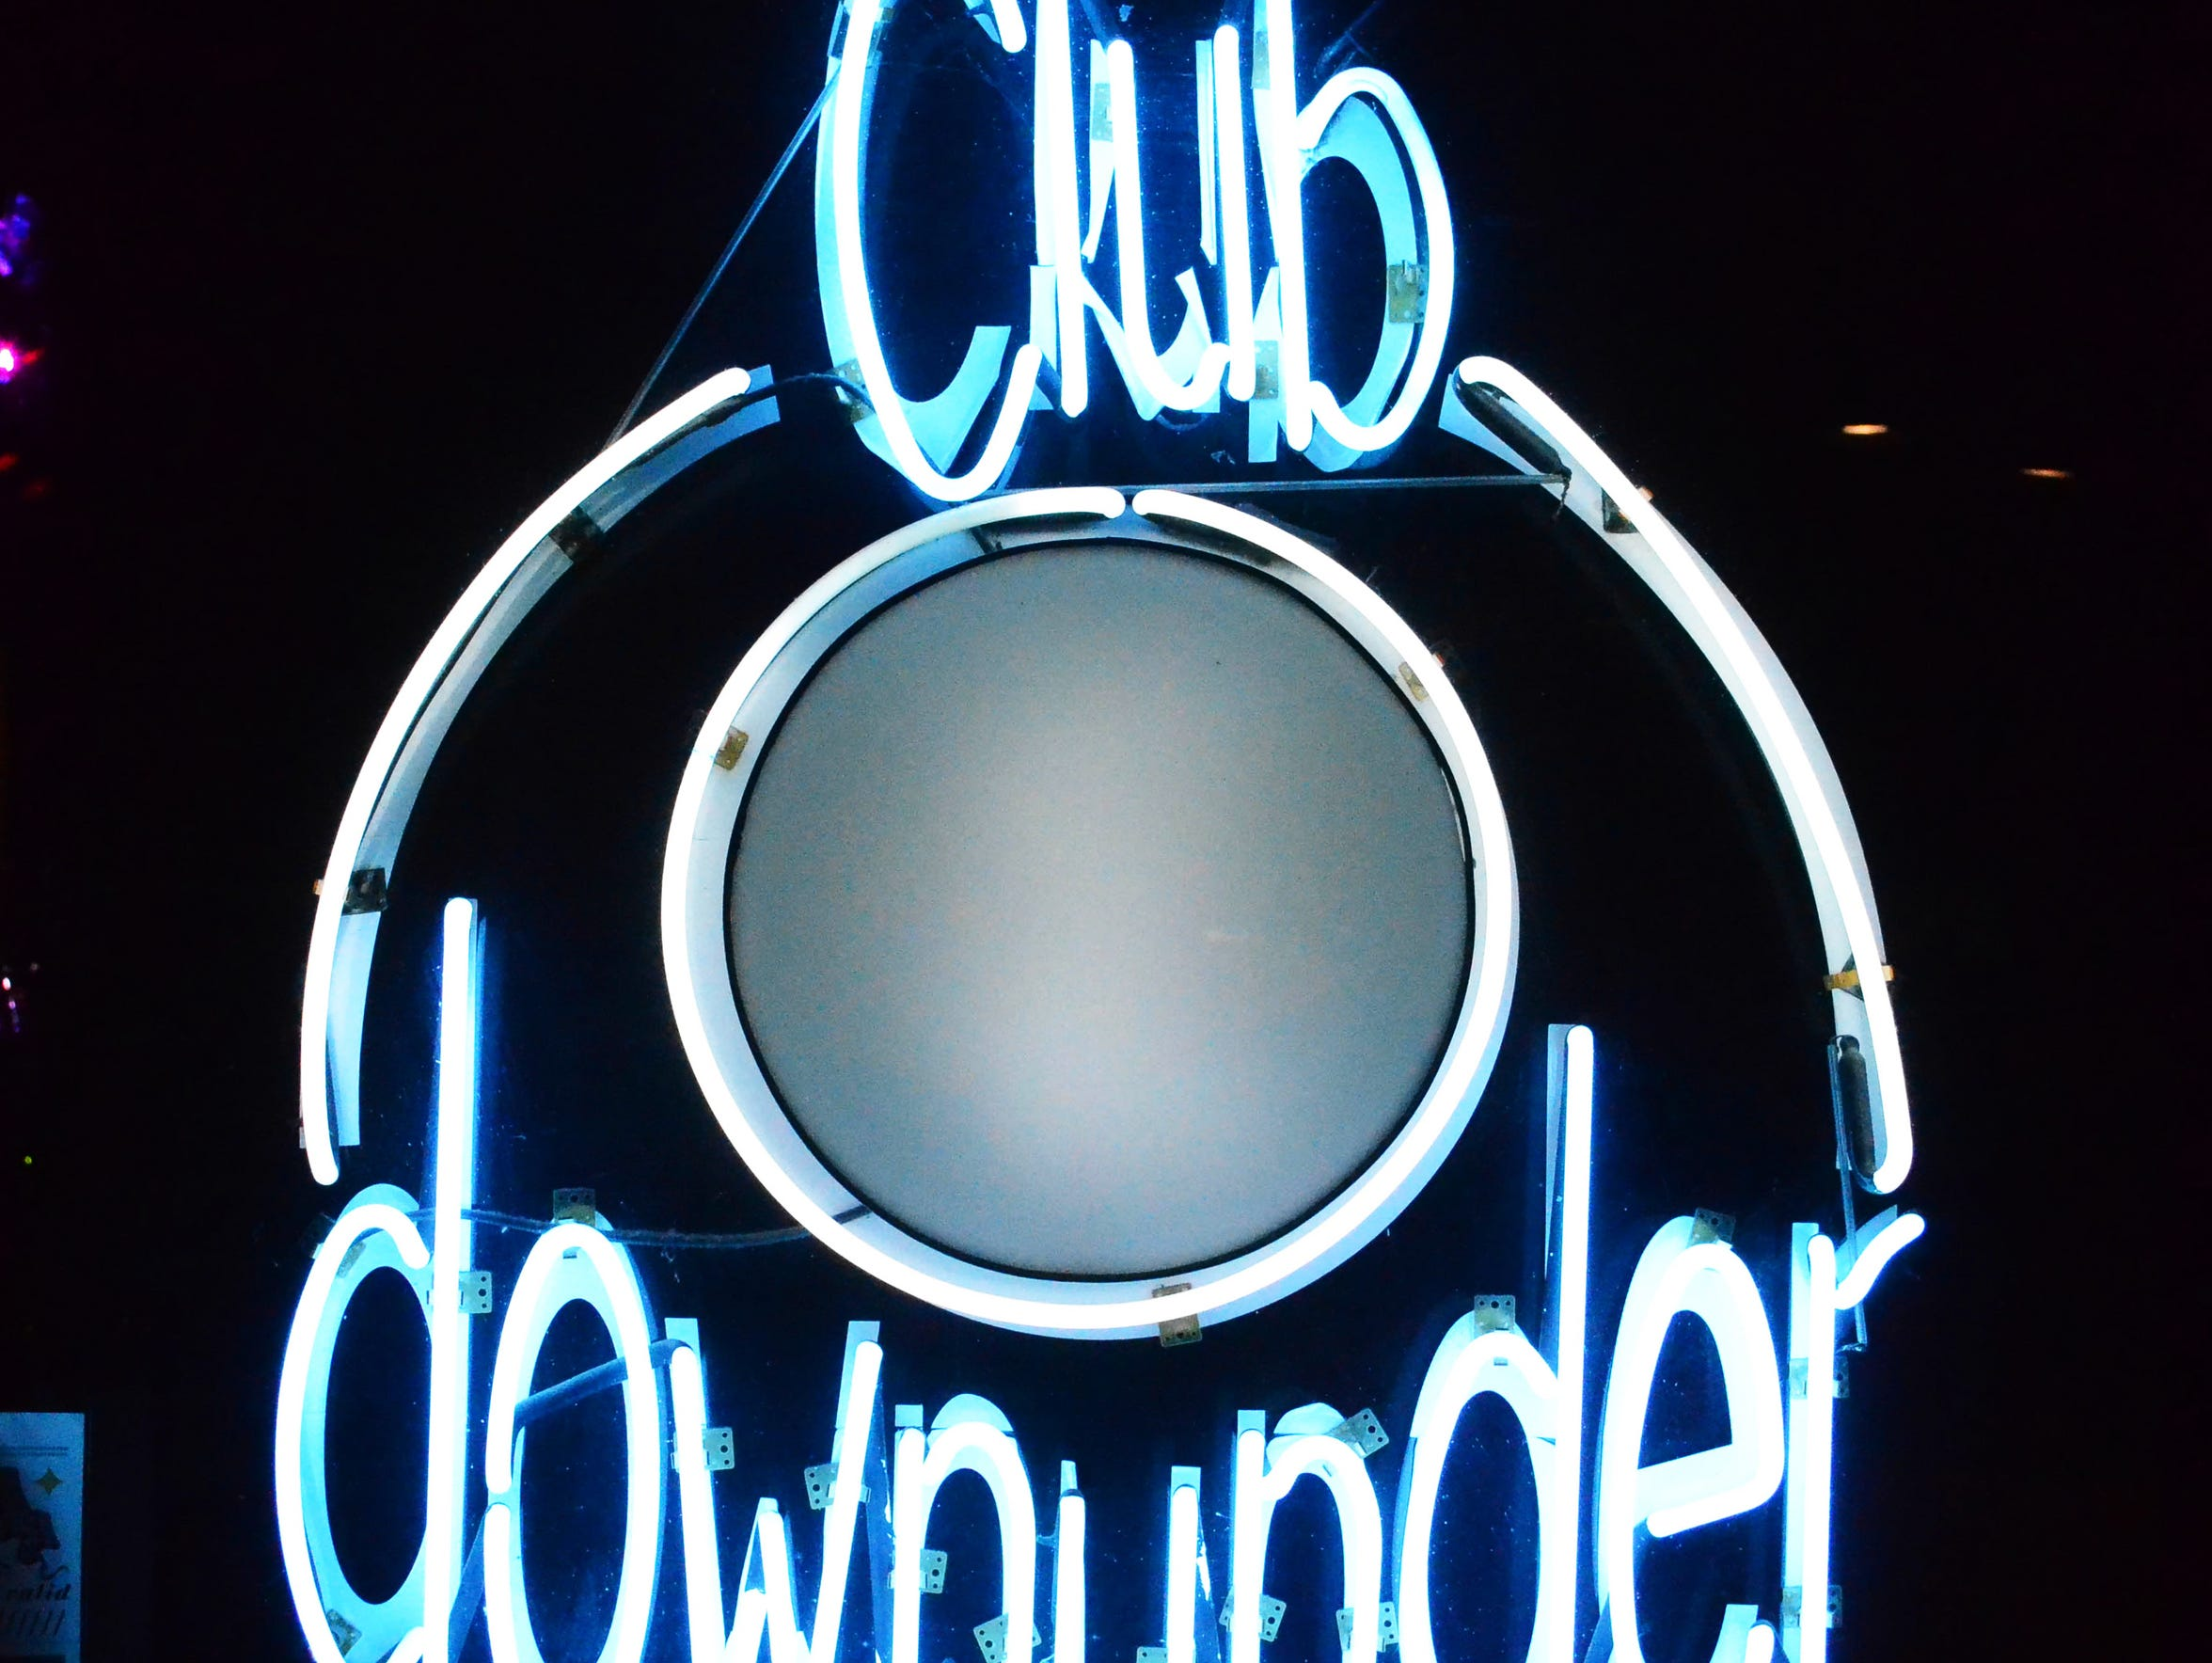 Club Downunder has been a fixture of Florida State's